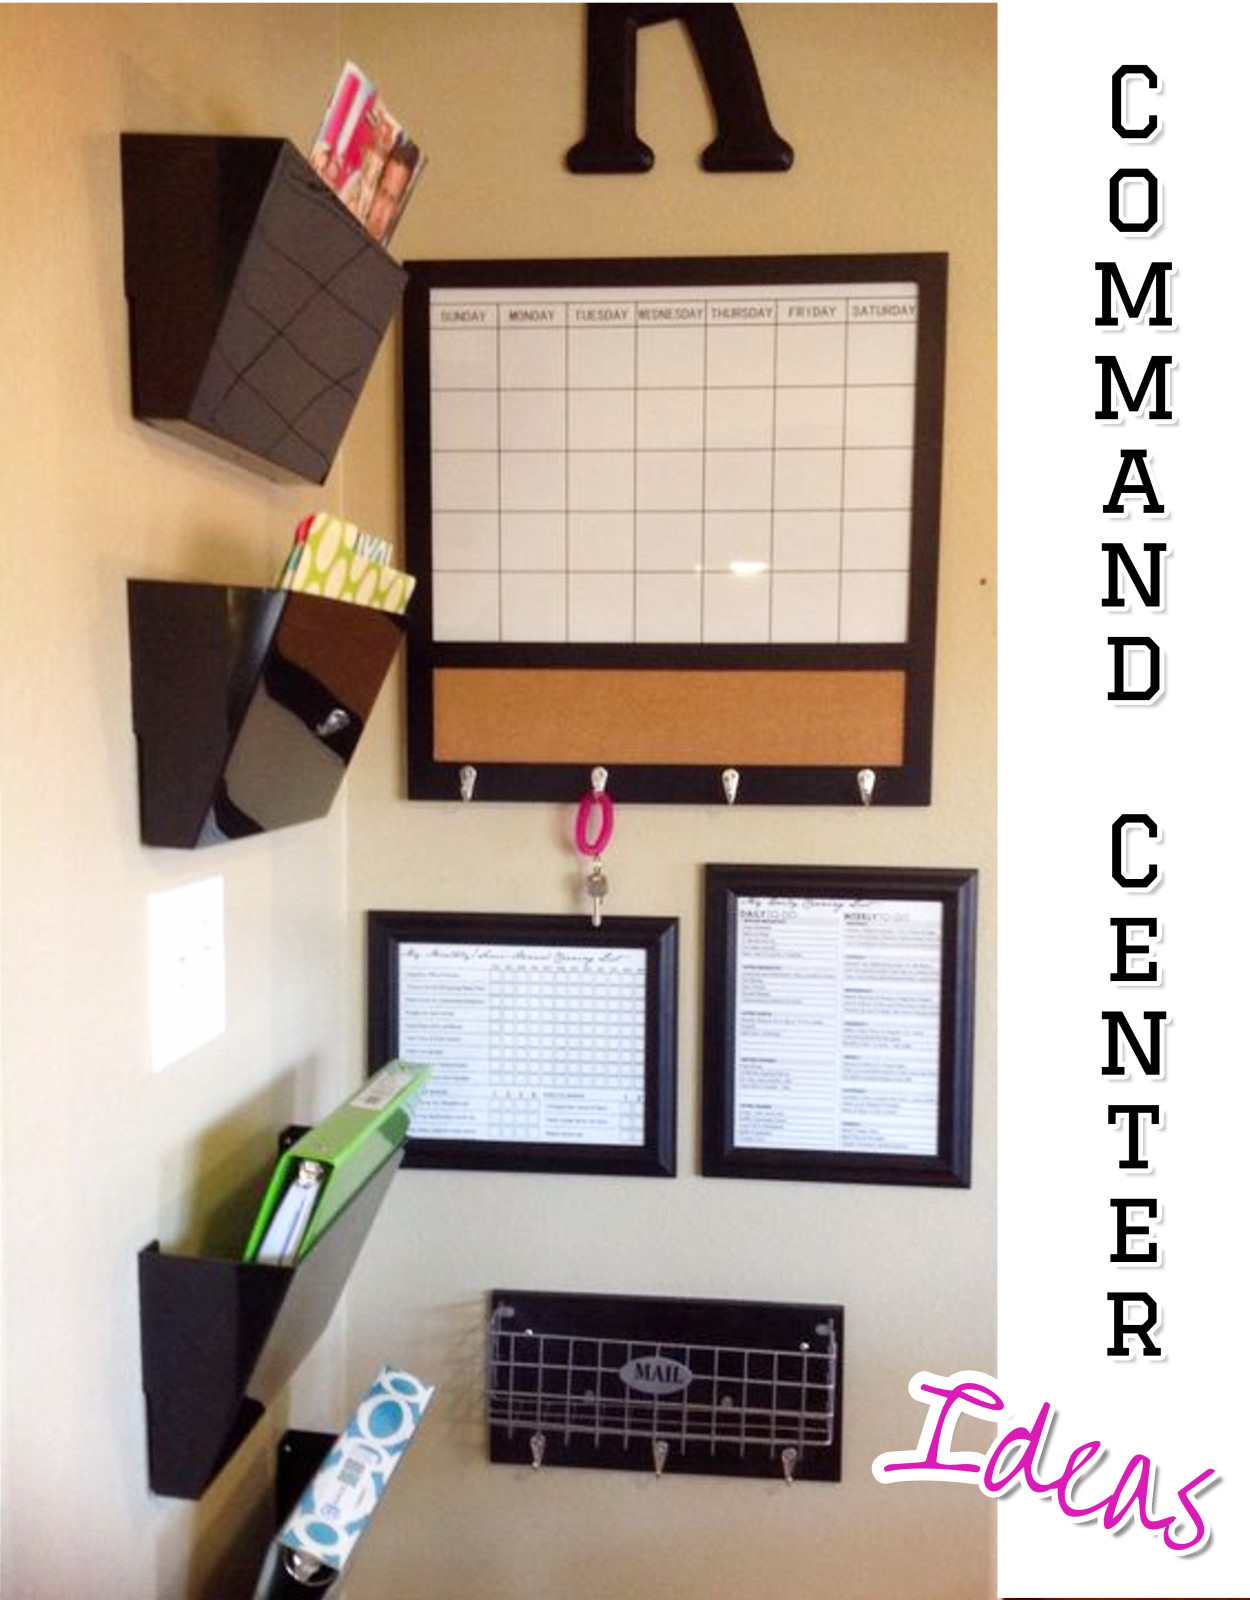 Commands centers • DIY family command centers.  Great ideas to organize your family activities on your kitchen wall.  Family command centers ideas for home organization - keep up with your kids life.